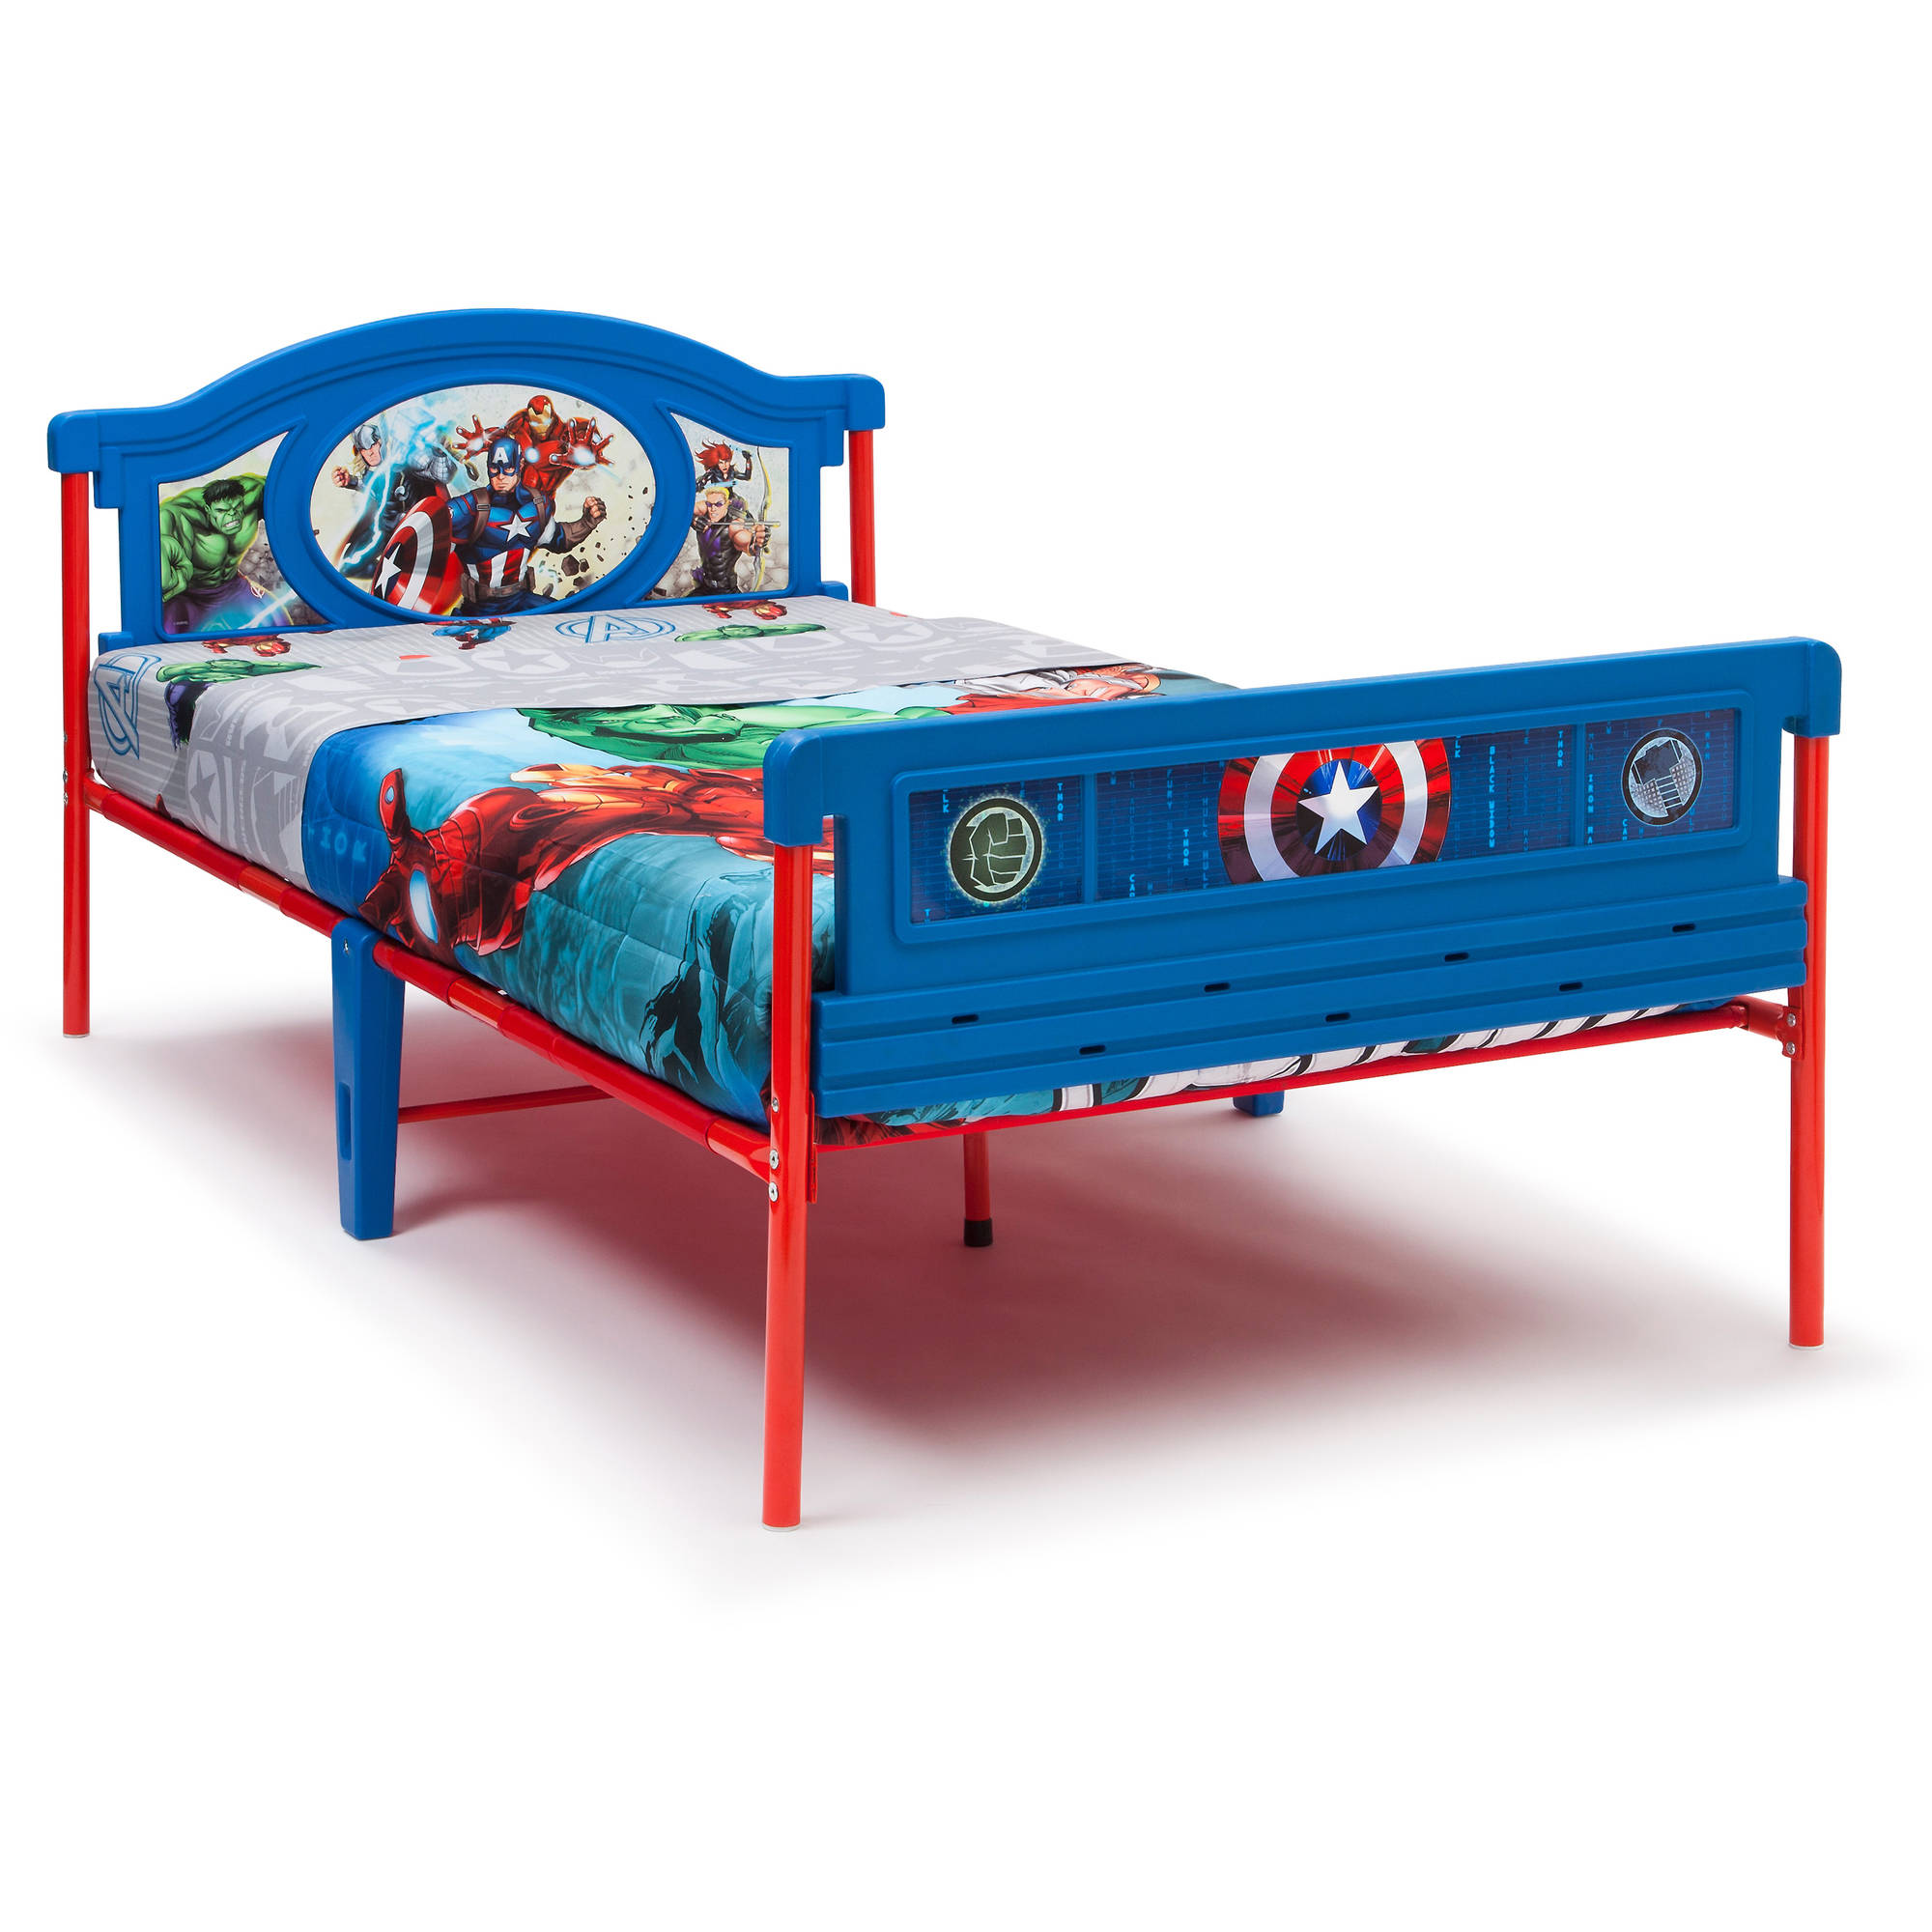 children by tractor twin made tradecraftspec toddler handcrafted buy truck frame a s for kids themed custom semi bed